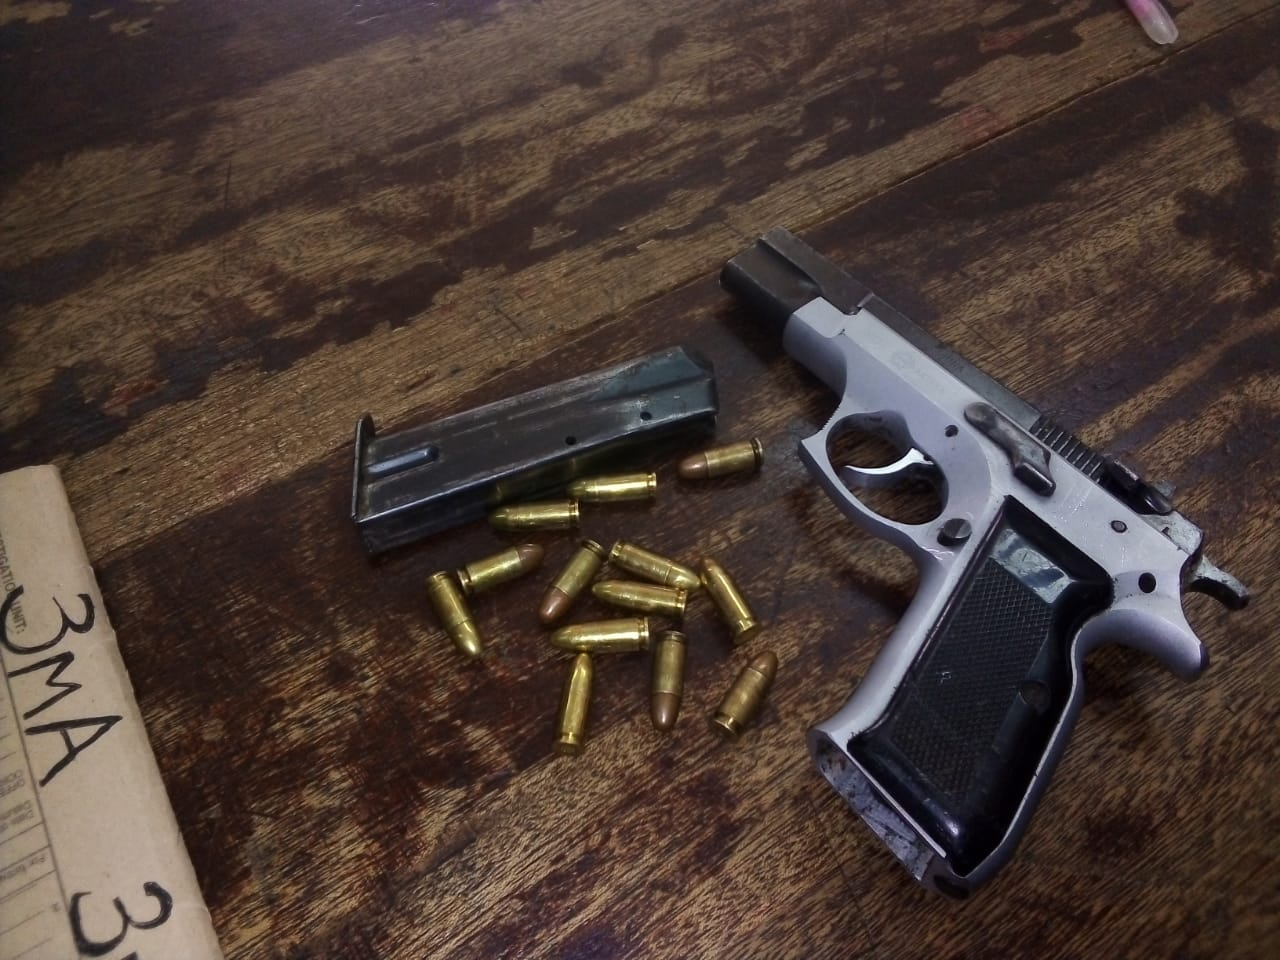 Off-duty police officer arrest suspects and recover firearm